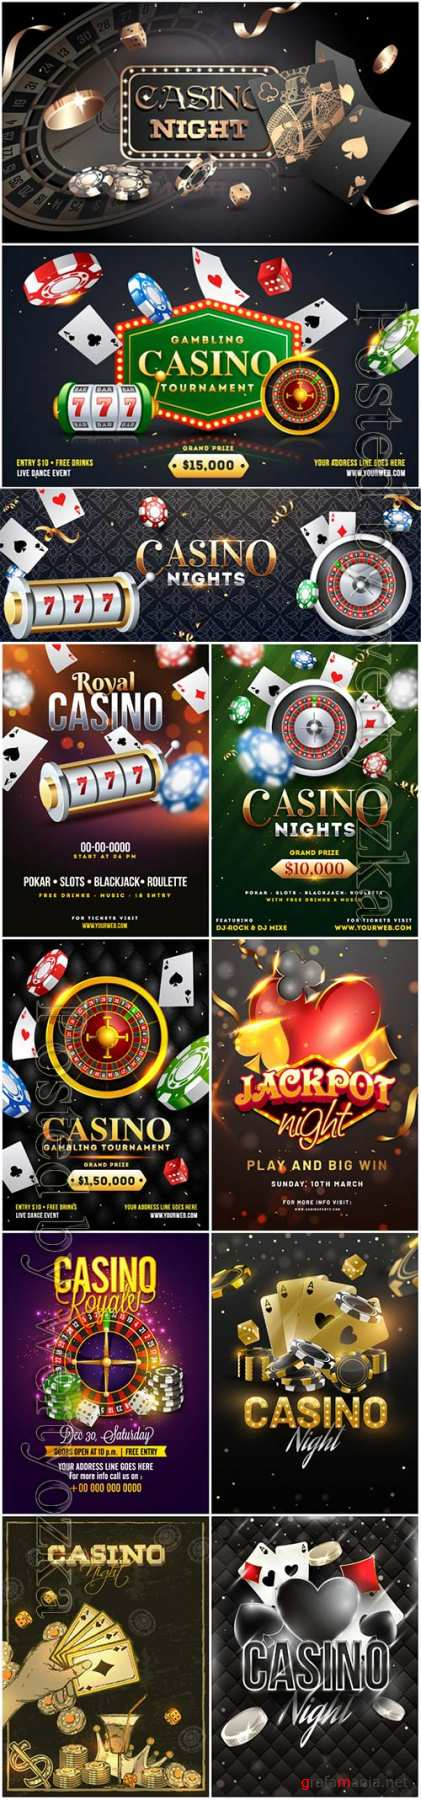 Advertising poster design, Casino Night text with casino chips, coins and playing cards illustration